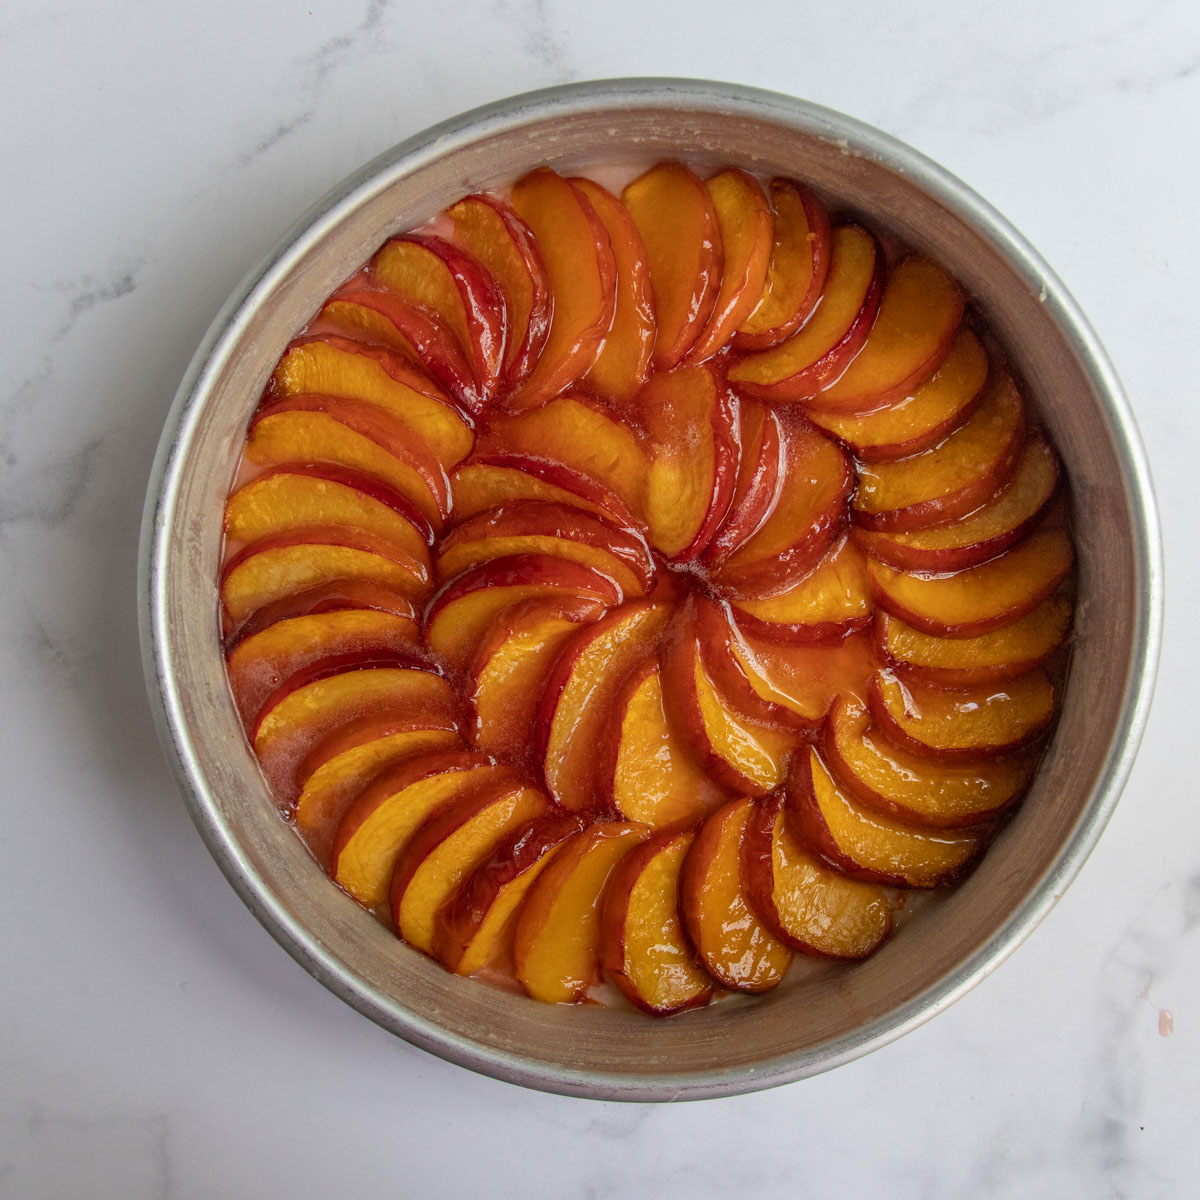 Roasted peaches arranged in a spiral pattern in a cake pan